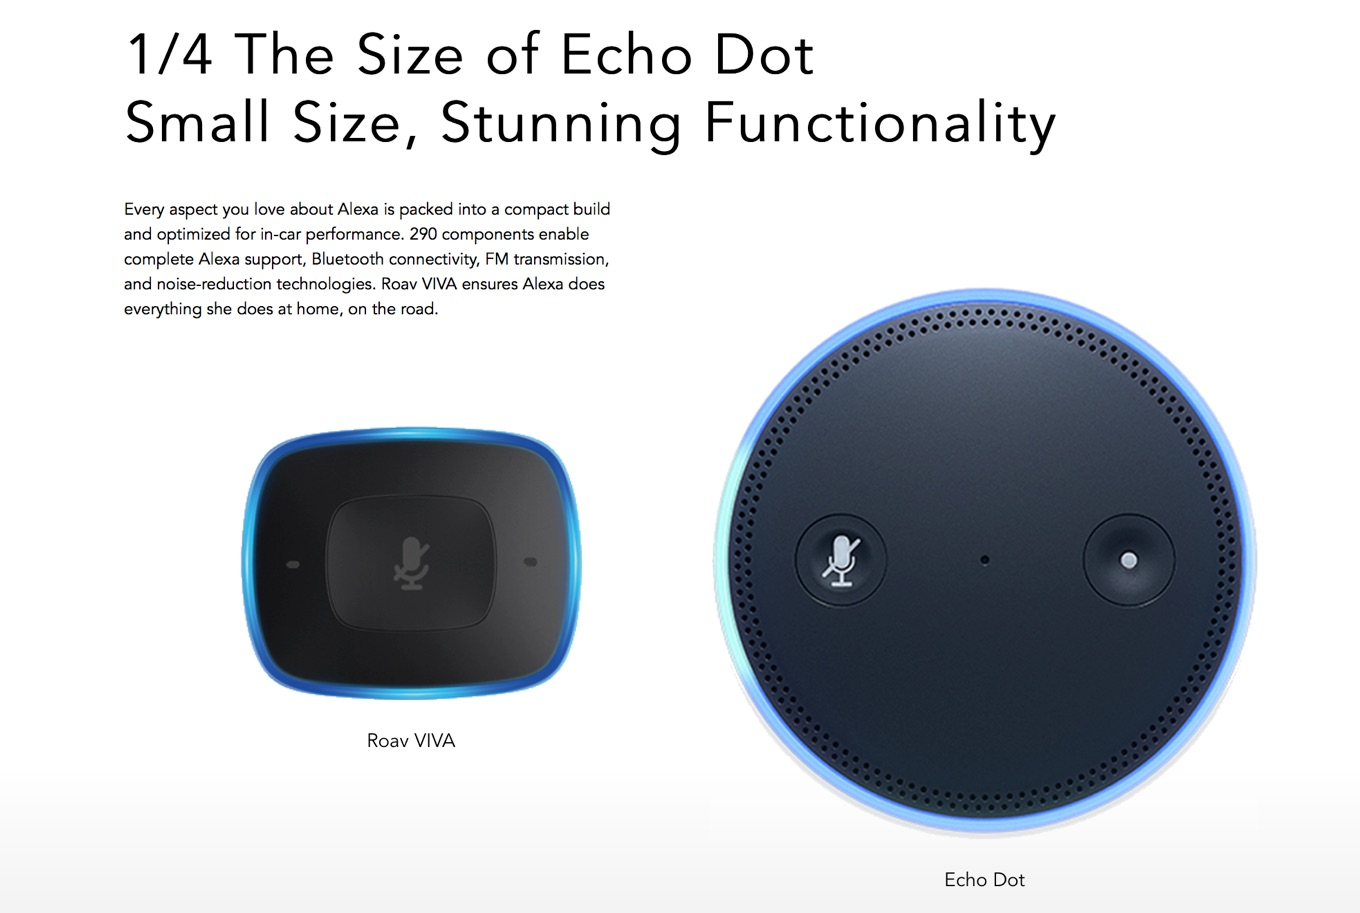 Amazon Echo DotとAnker Rova VIVAのサイズ比較